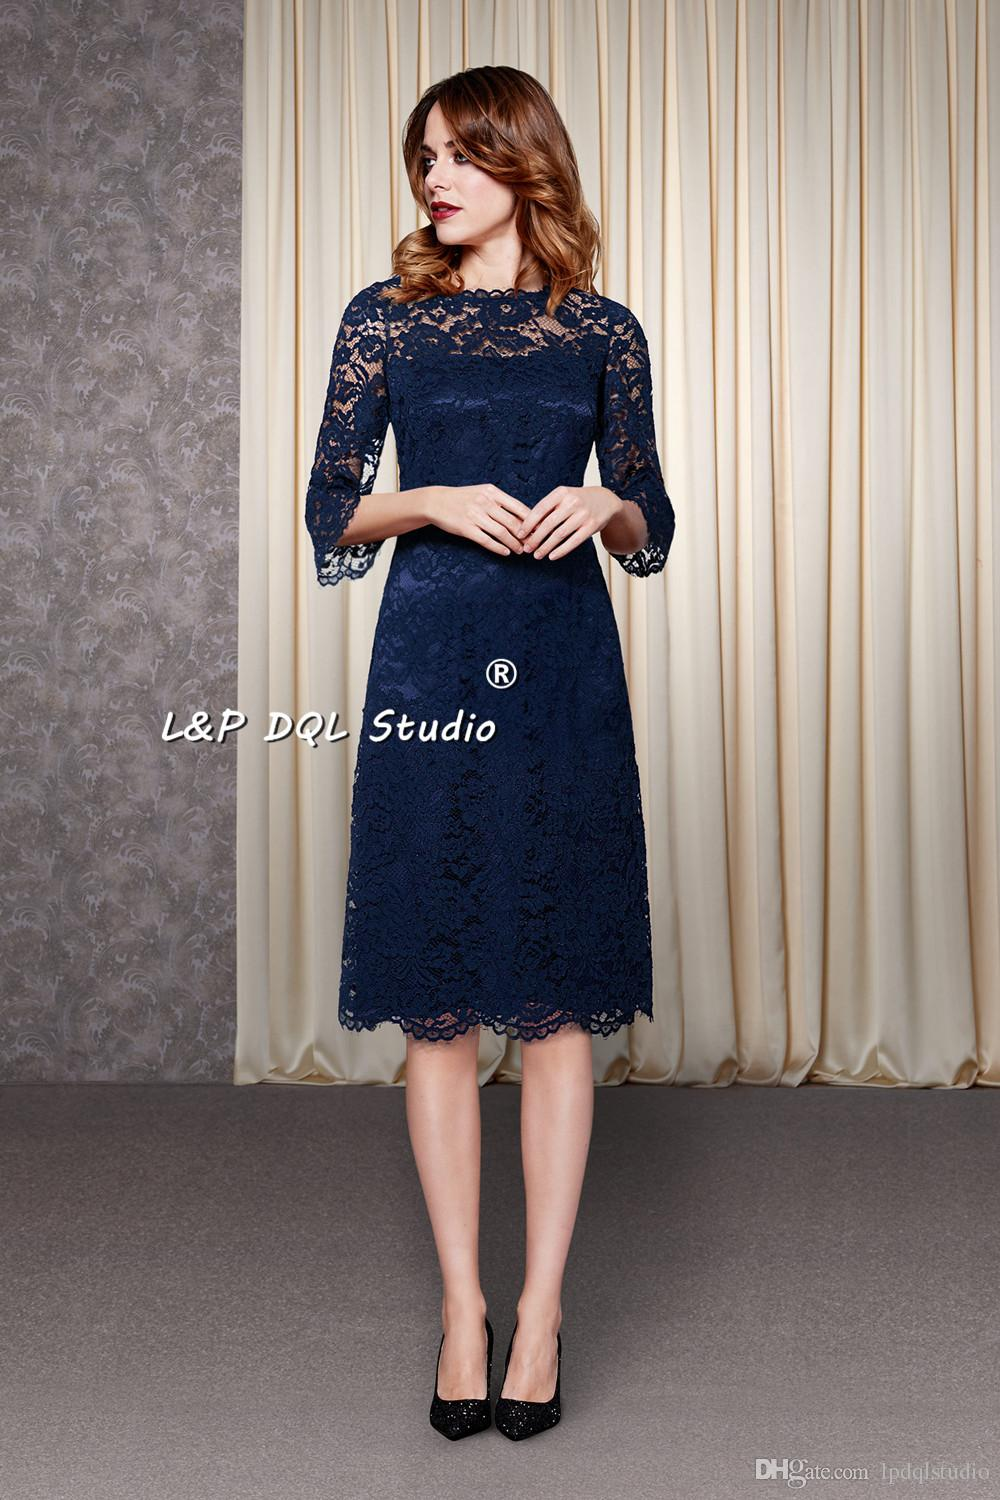 Navy blue lace bridesmaid dresses three quarter sleeves zipper navy blue lace bridesmaid dresses three quarter sleeves zipper back knee length wedding party dresses custom made plus size garden style claret bridesmaid ombrellifo Images